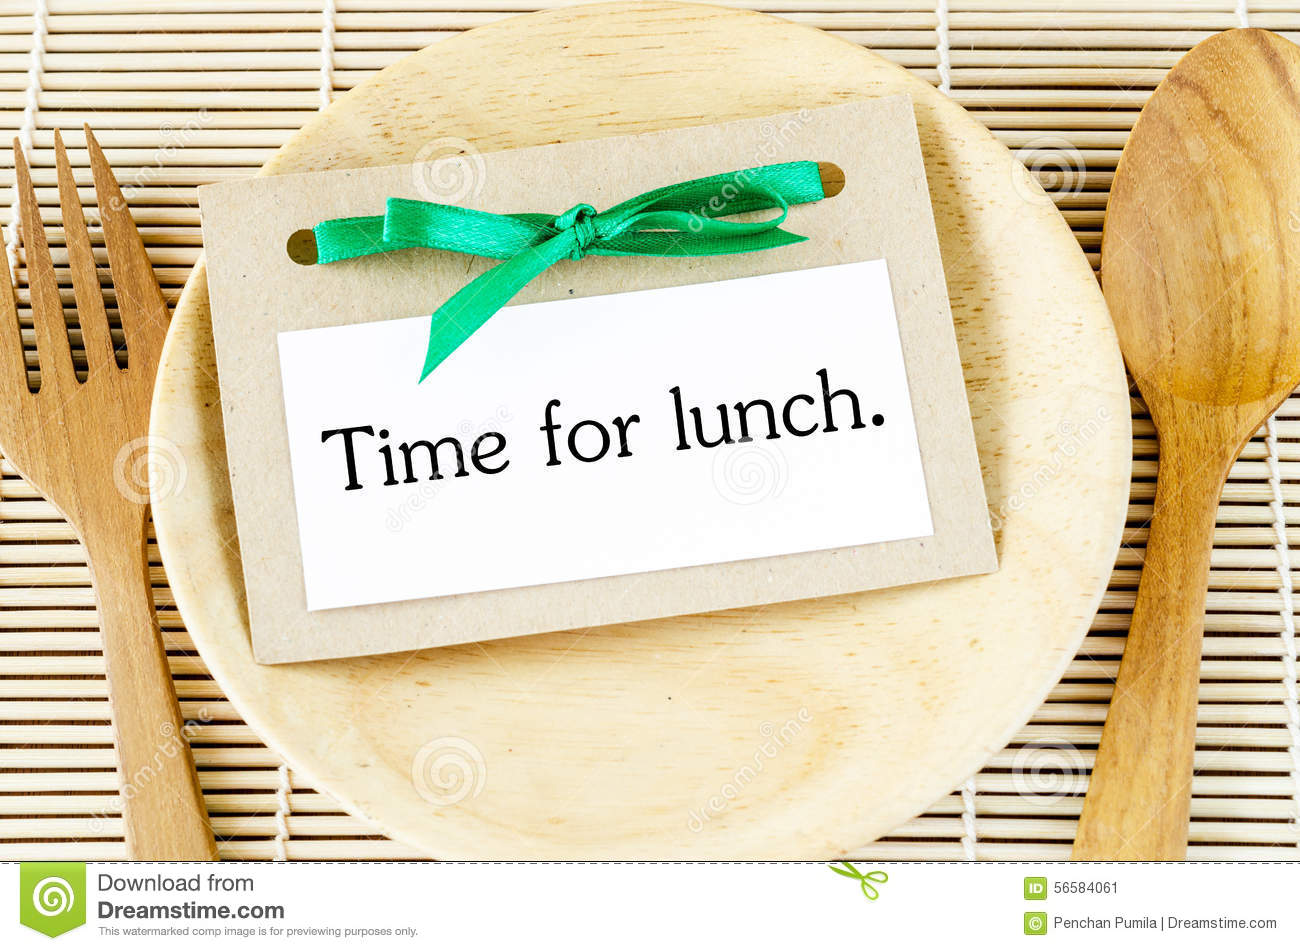 more time for lunch I think kids should be allowed to leave school during lunch because we deserve to have some privileges in school but we're treated like prisoners 7 hrs a more than half the time, they would serve vegetables such as broccoli, carrots, and sometimes even spinach if kids leave the school.